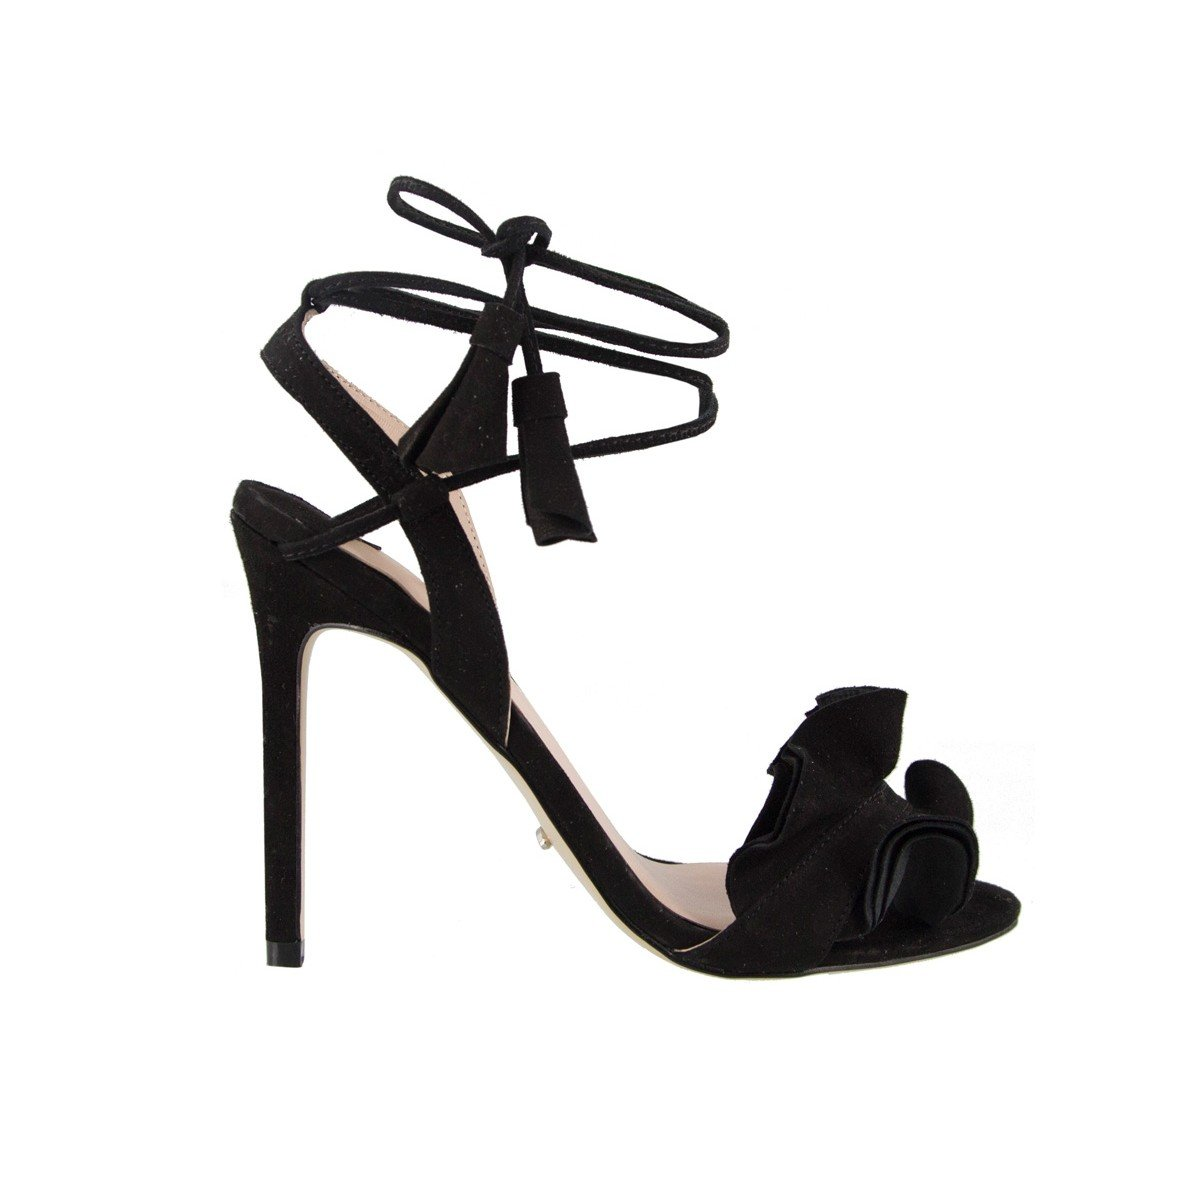 Tony Bianco Kalipso Heeled Sandals - with Slender Stiletto Heel and Wrap-Around Self-Tied Straps (8, Blush Kid Suede)